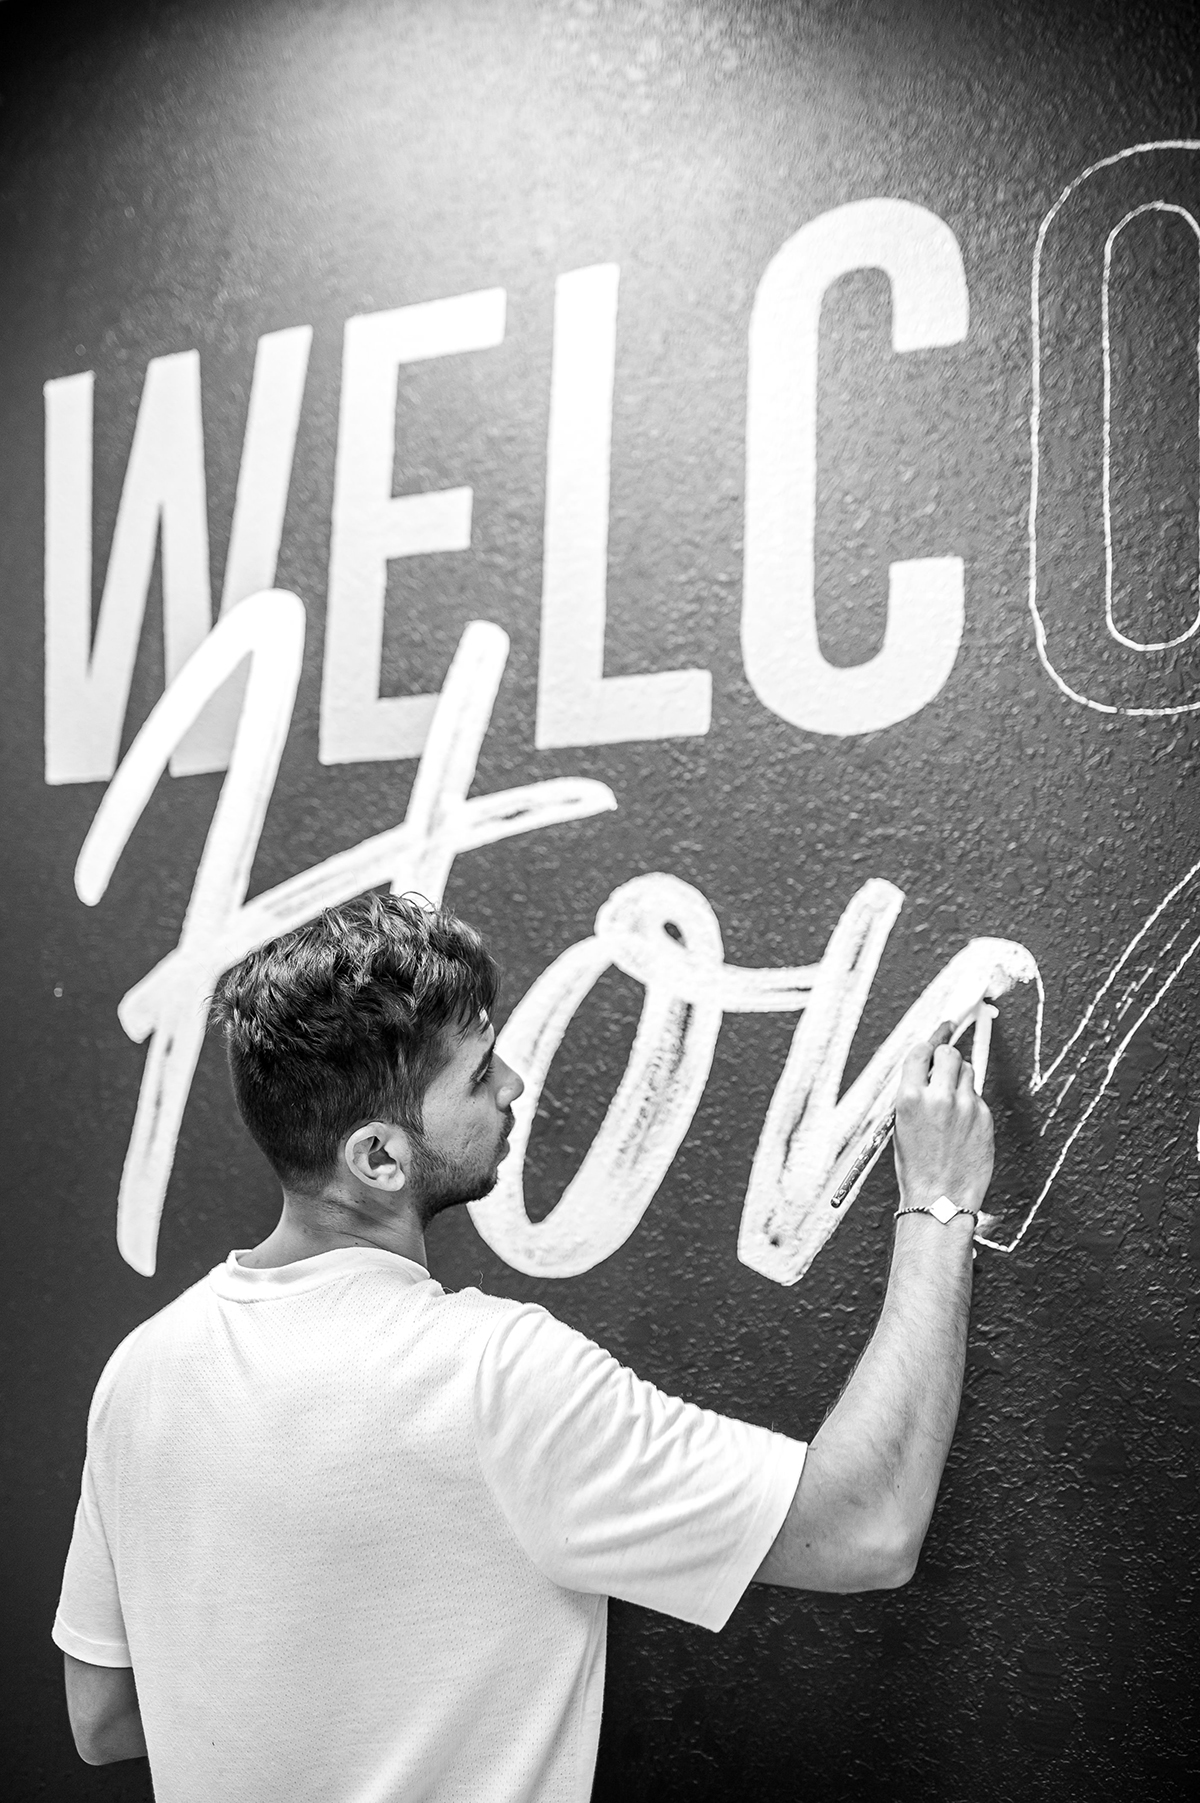 Leo-Gomez-Studio-Welcome-Home-Mural-07.jpg